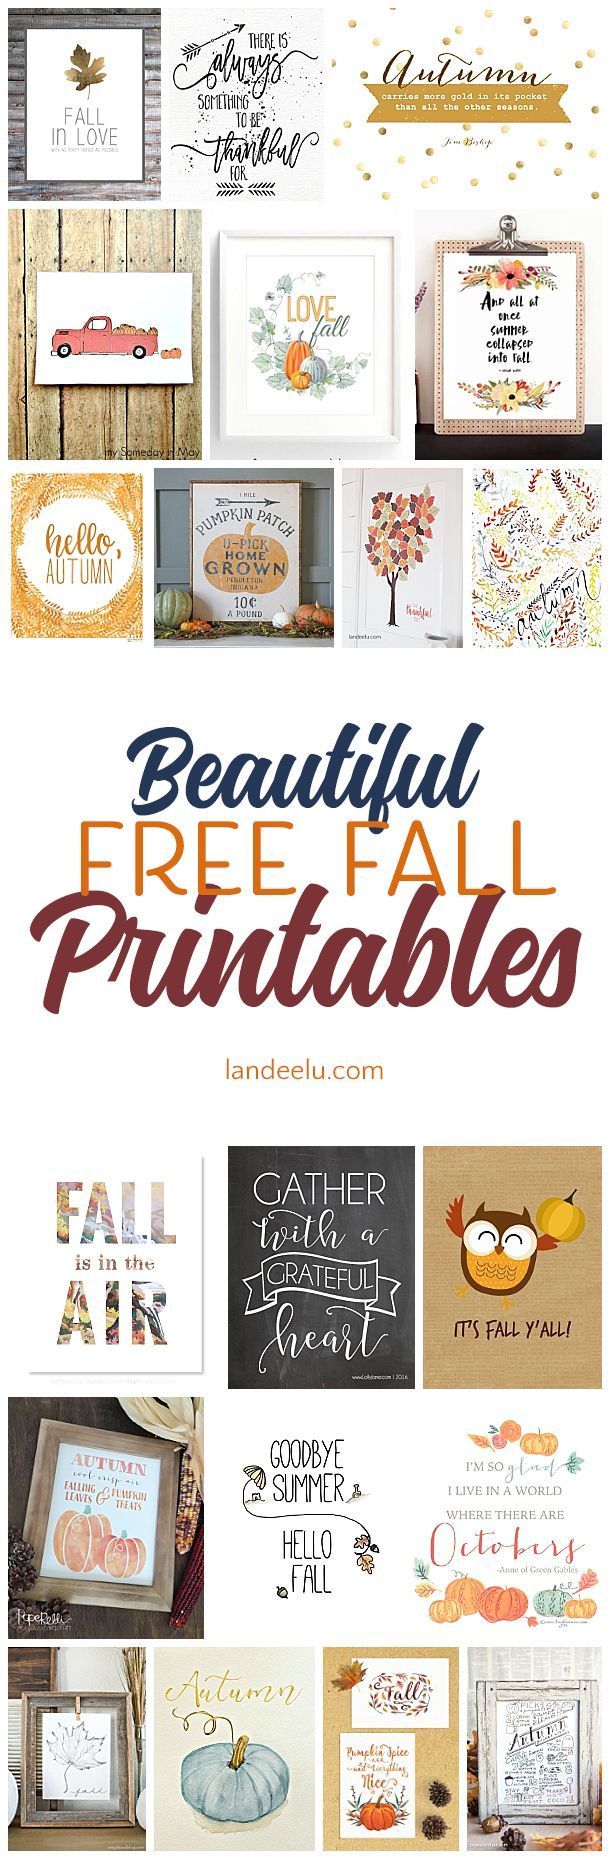 Easily decorate for fall by downloading these free fall printables and printing them. So quick and easy!